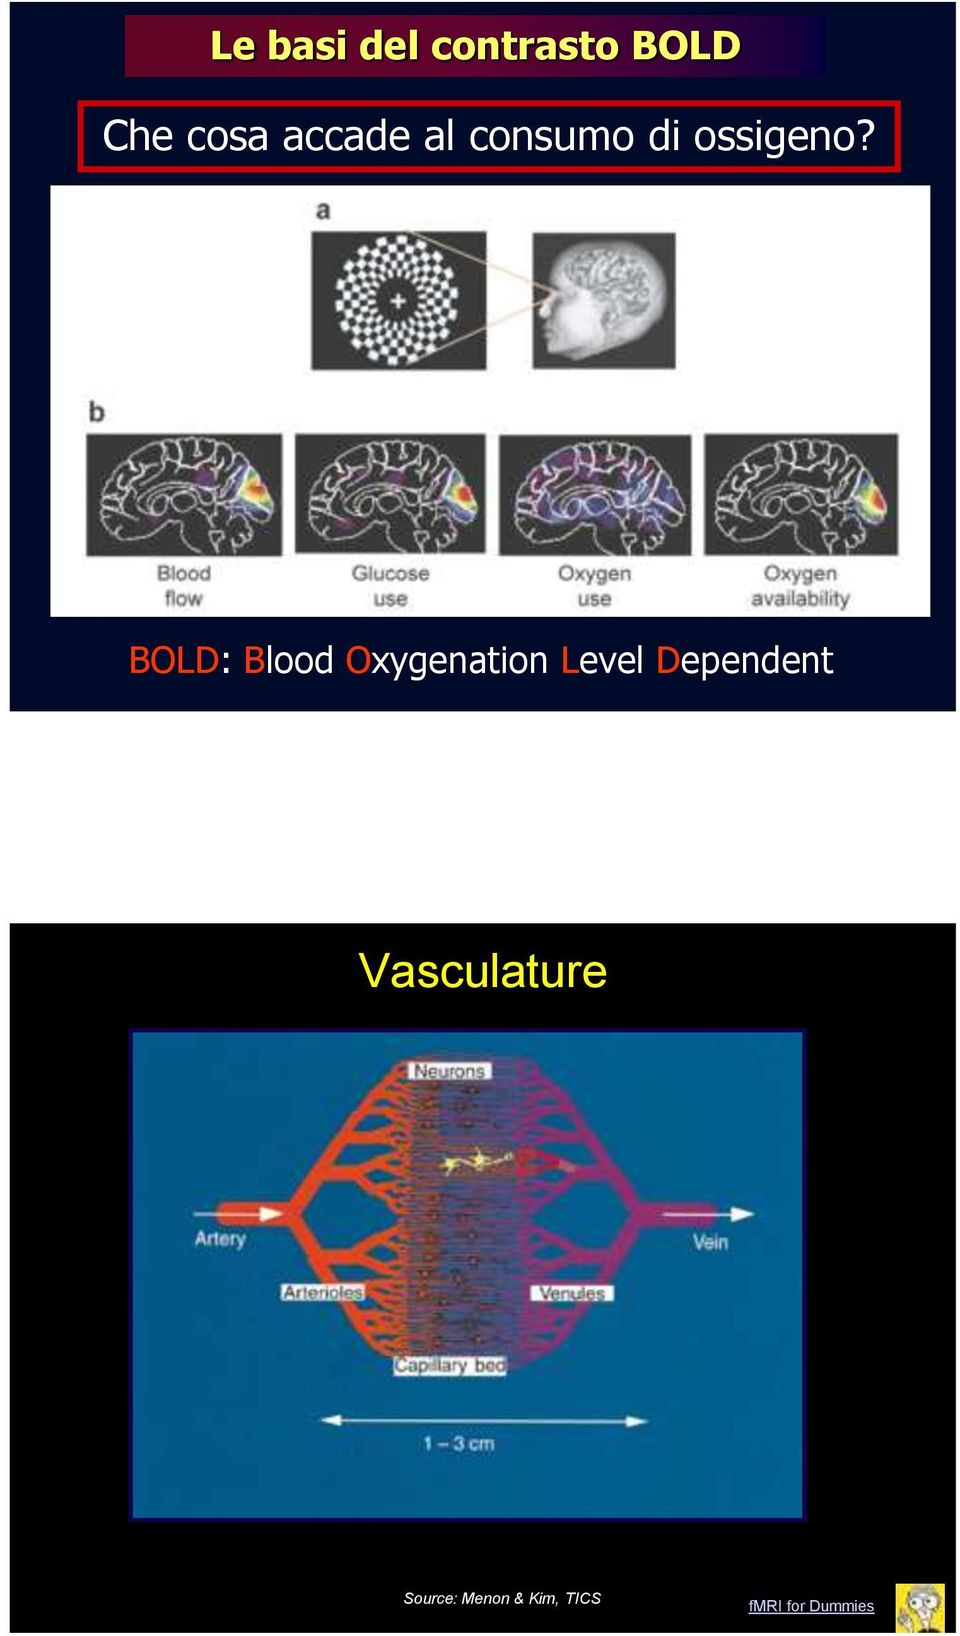 BOLD: Blood Oxygenation Level Dependent